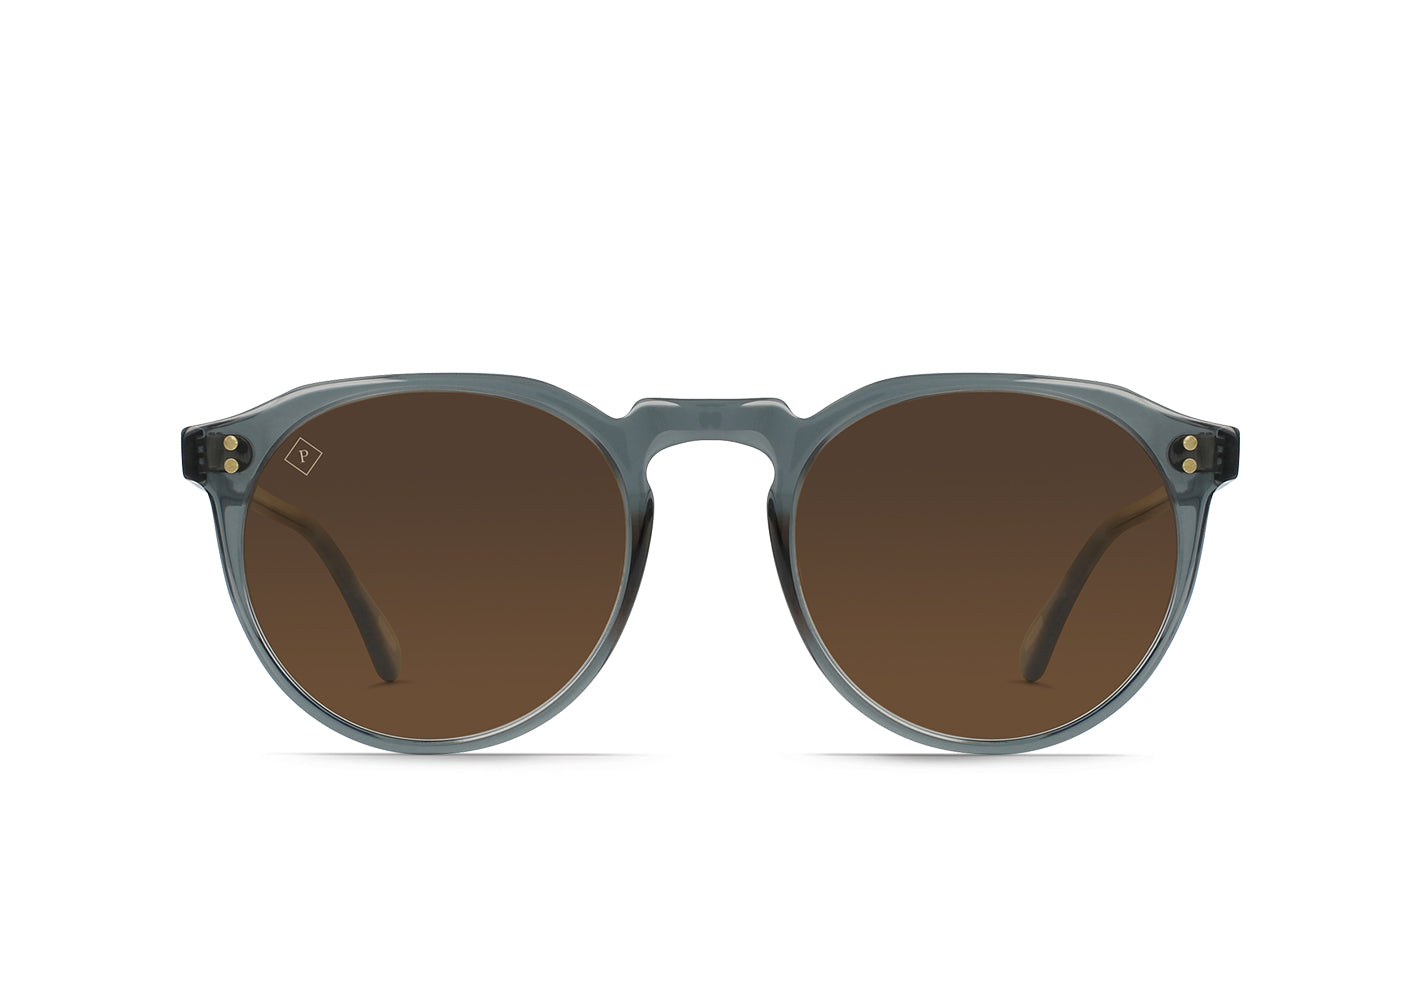 Slate Crystal / Vibrant Brown Polarized